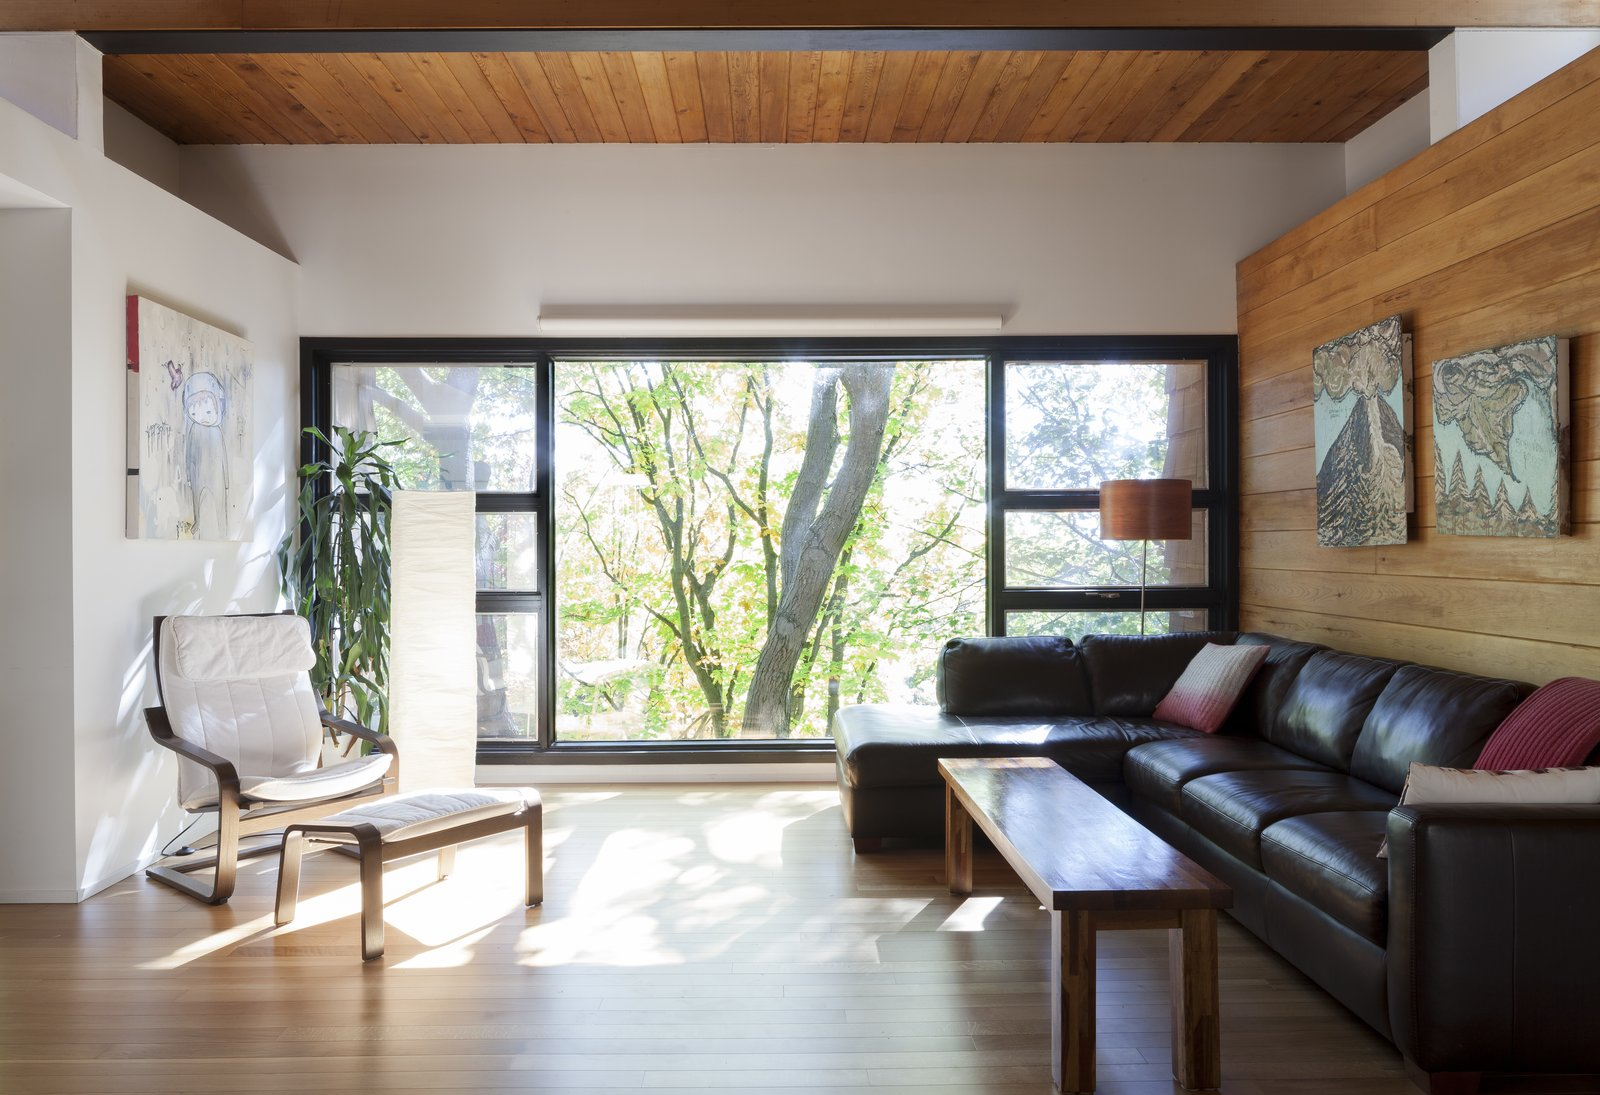 Living Room, Sofa, Chair, Sectional, Lamps, Coffee Tables, Floor Lighting, Medium Hardwood Floor, and Light Hardwood Floor Living room - Rue de l'Espéranto residence  - Guillaume Sasseville & PARKA - Architecture & Design  Photos from Rue de l'Espéranto residence